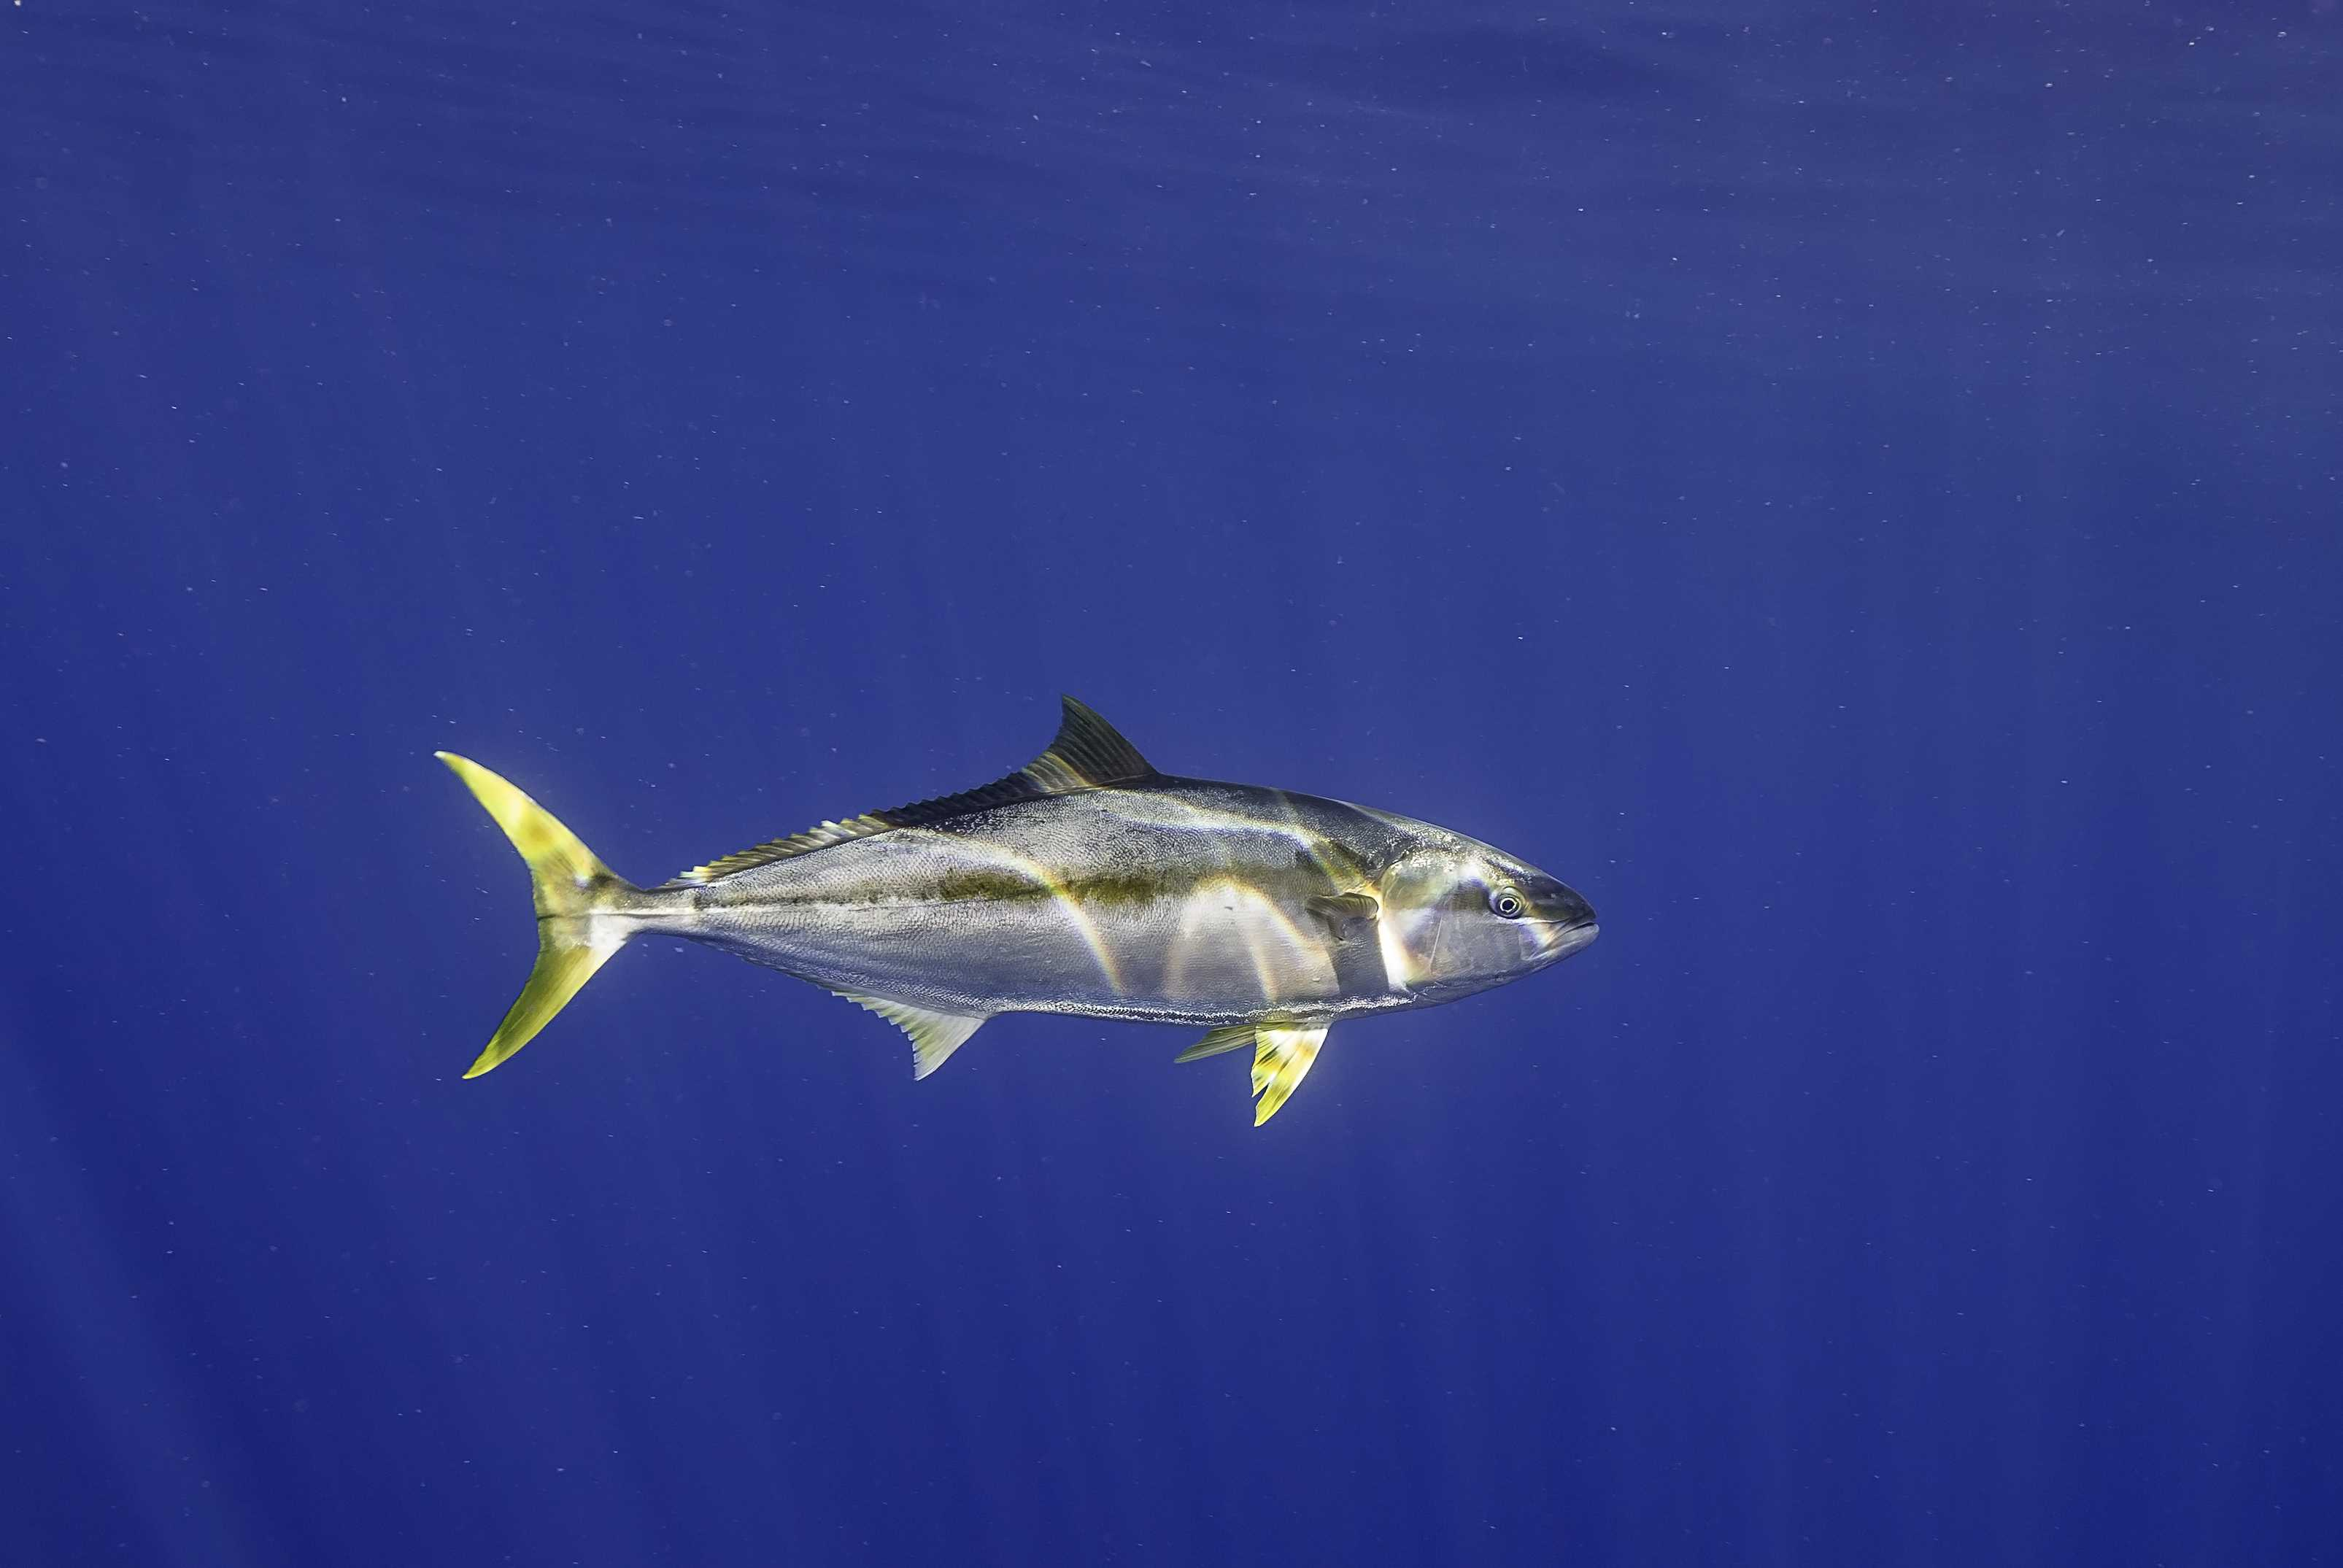 Yellow Tail Tuna in a blue ocean off the coast of mexico